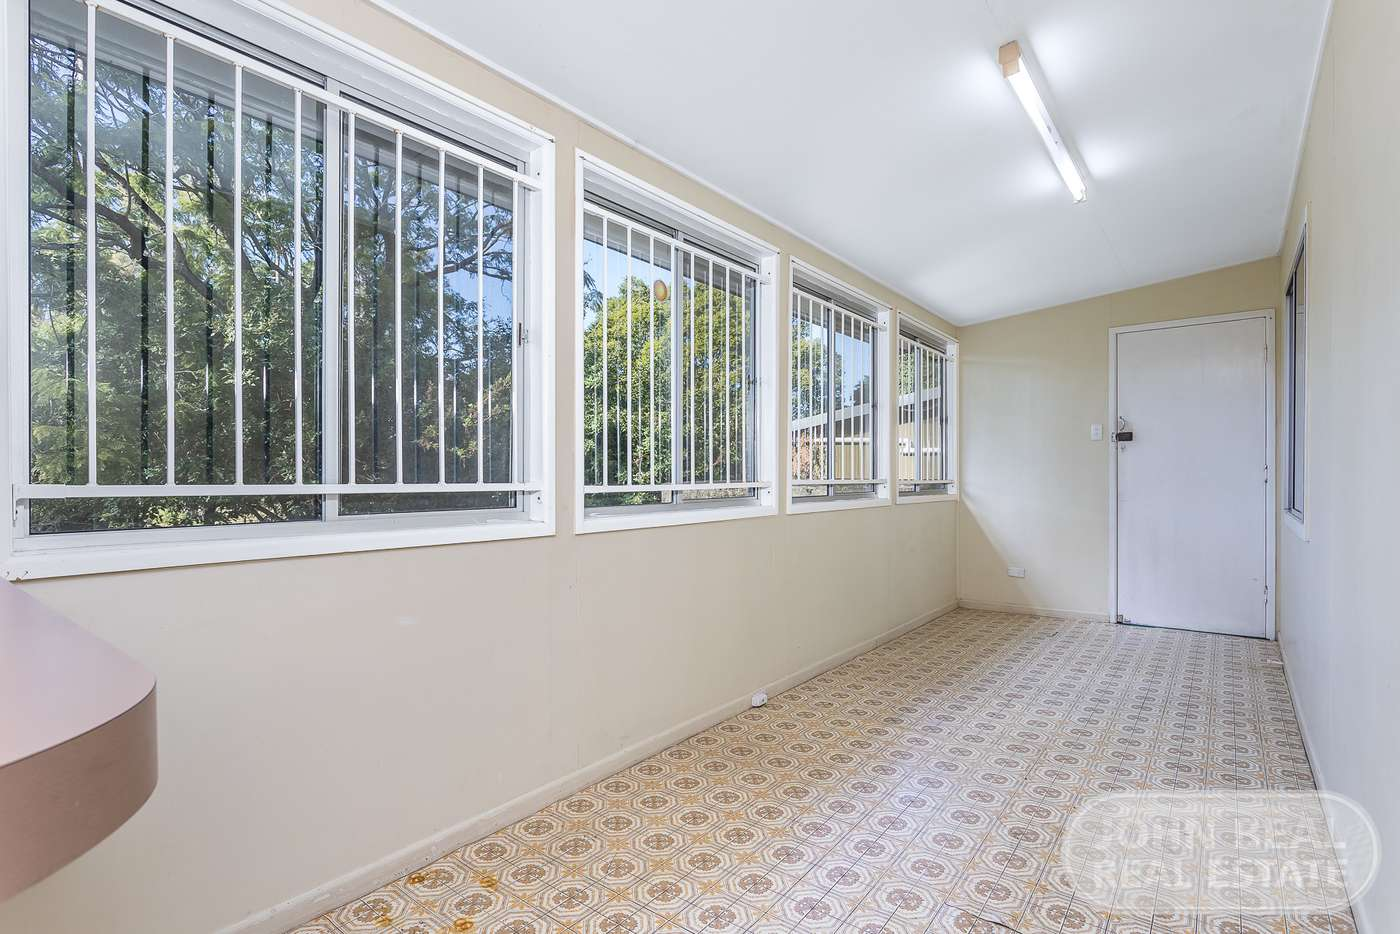 Seventh view of Homely house listing, 270 Oakey Flat Rd, Morayfield QLD 4506